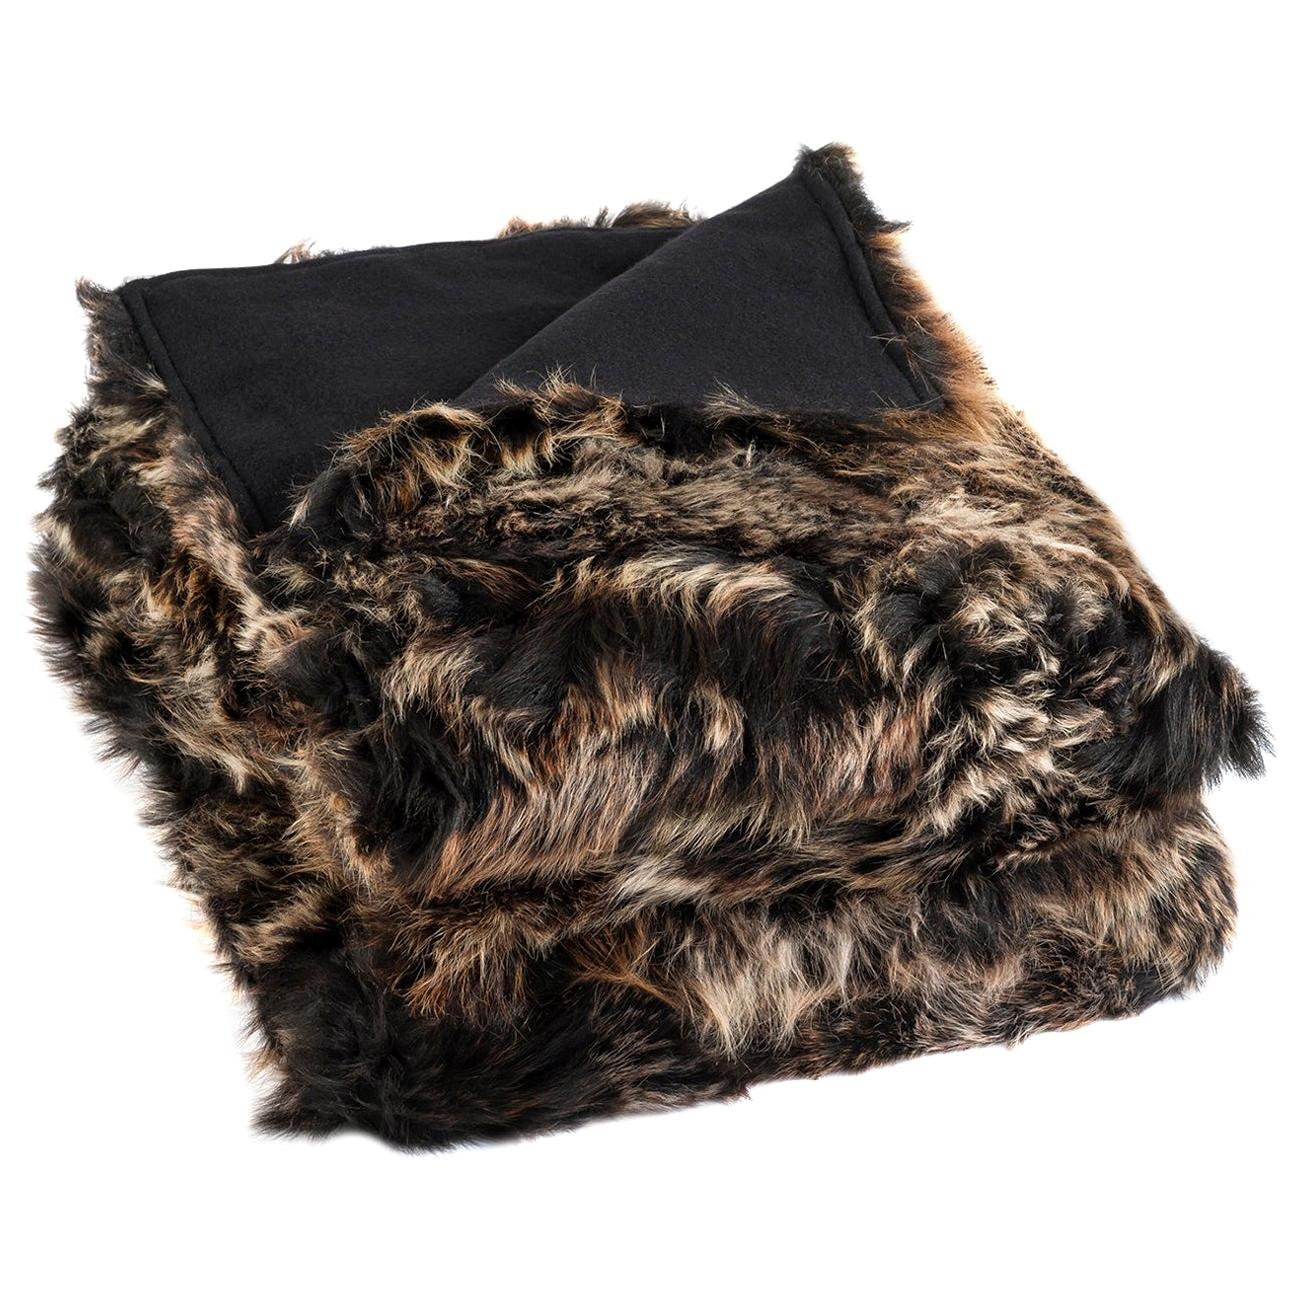 JG Switzer Toscana Sheep Fur Truffle Throw Backed with Lambswool/Cashmere